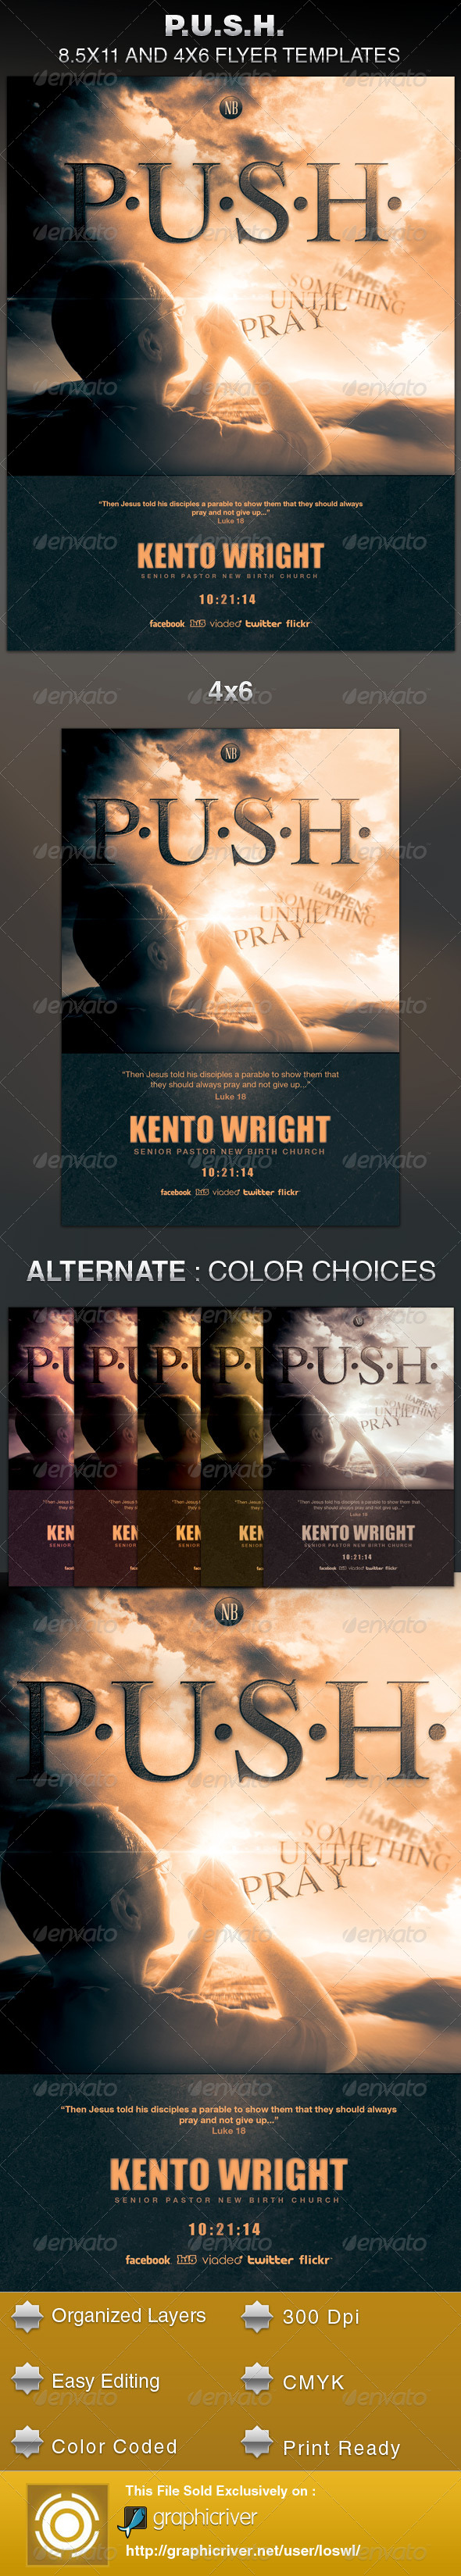 GraphicRiver P.U.S.H Church Flyer Template 5918496